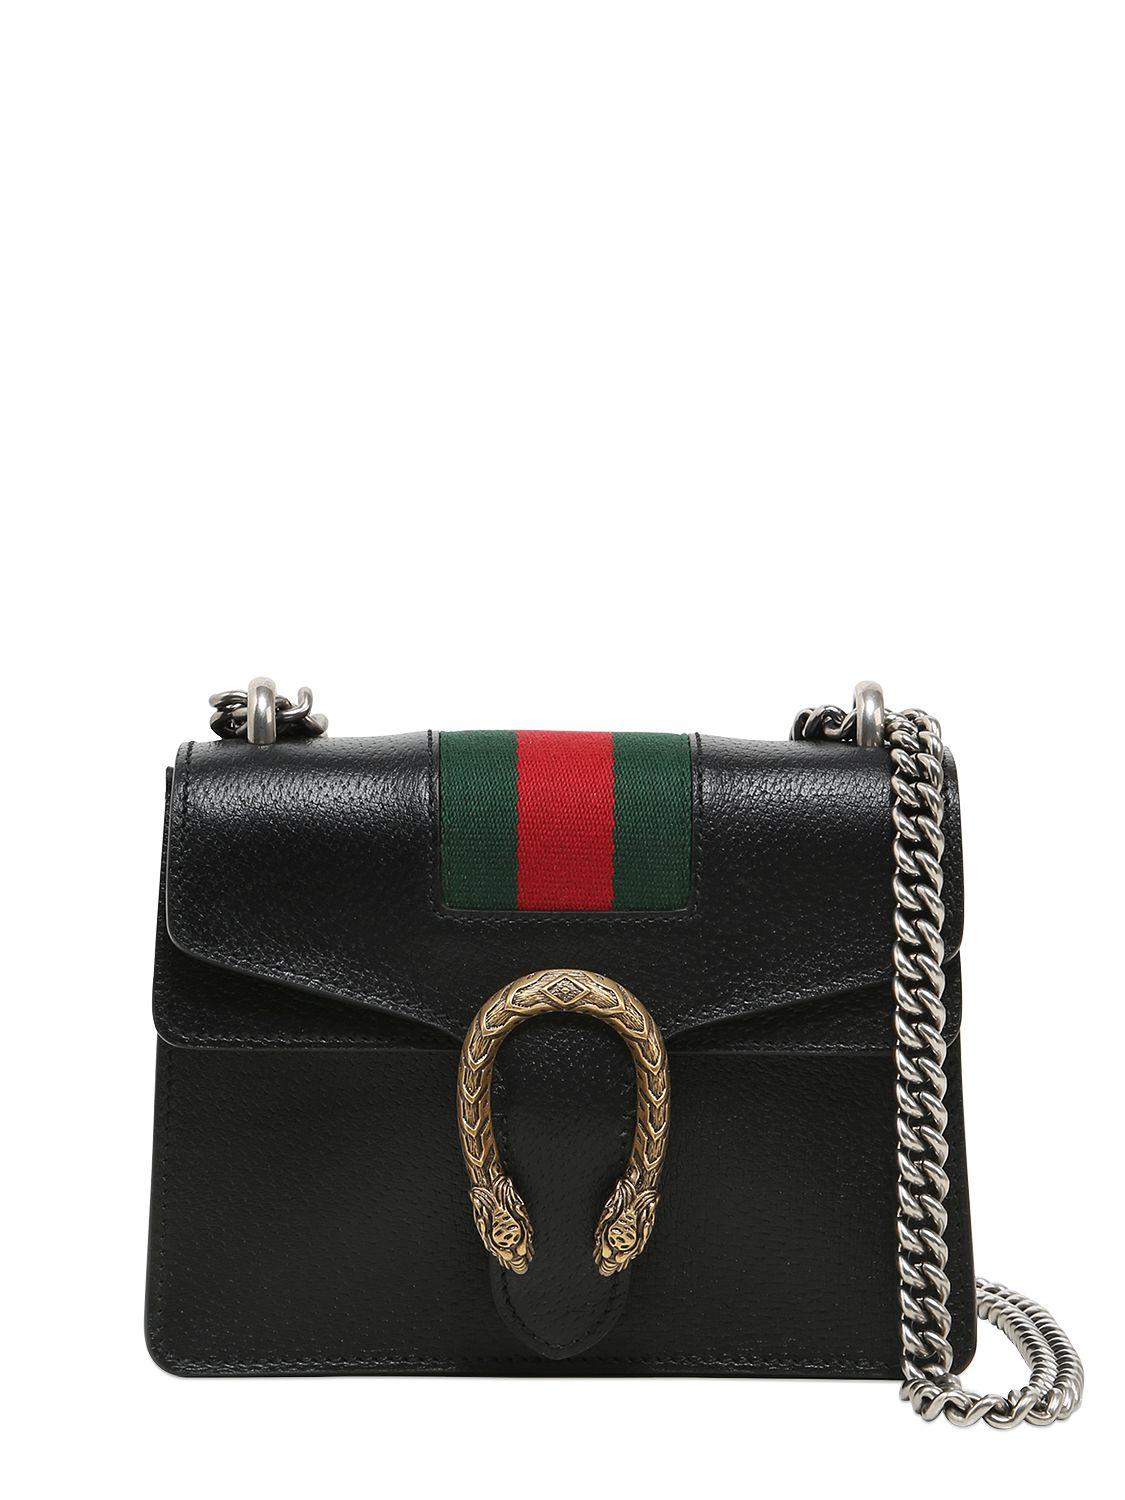 gucci mini dionysus leather bag w web detail in black lyst. Black Bedroom Furniture Sets. Home Design Ideas